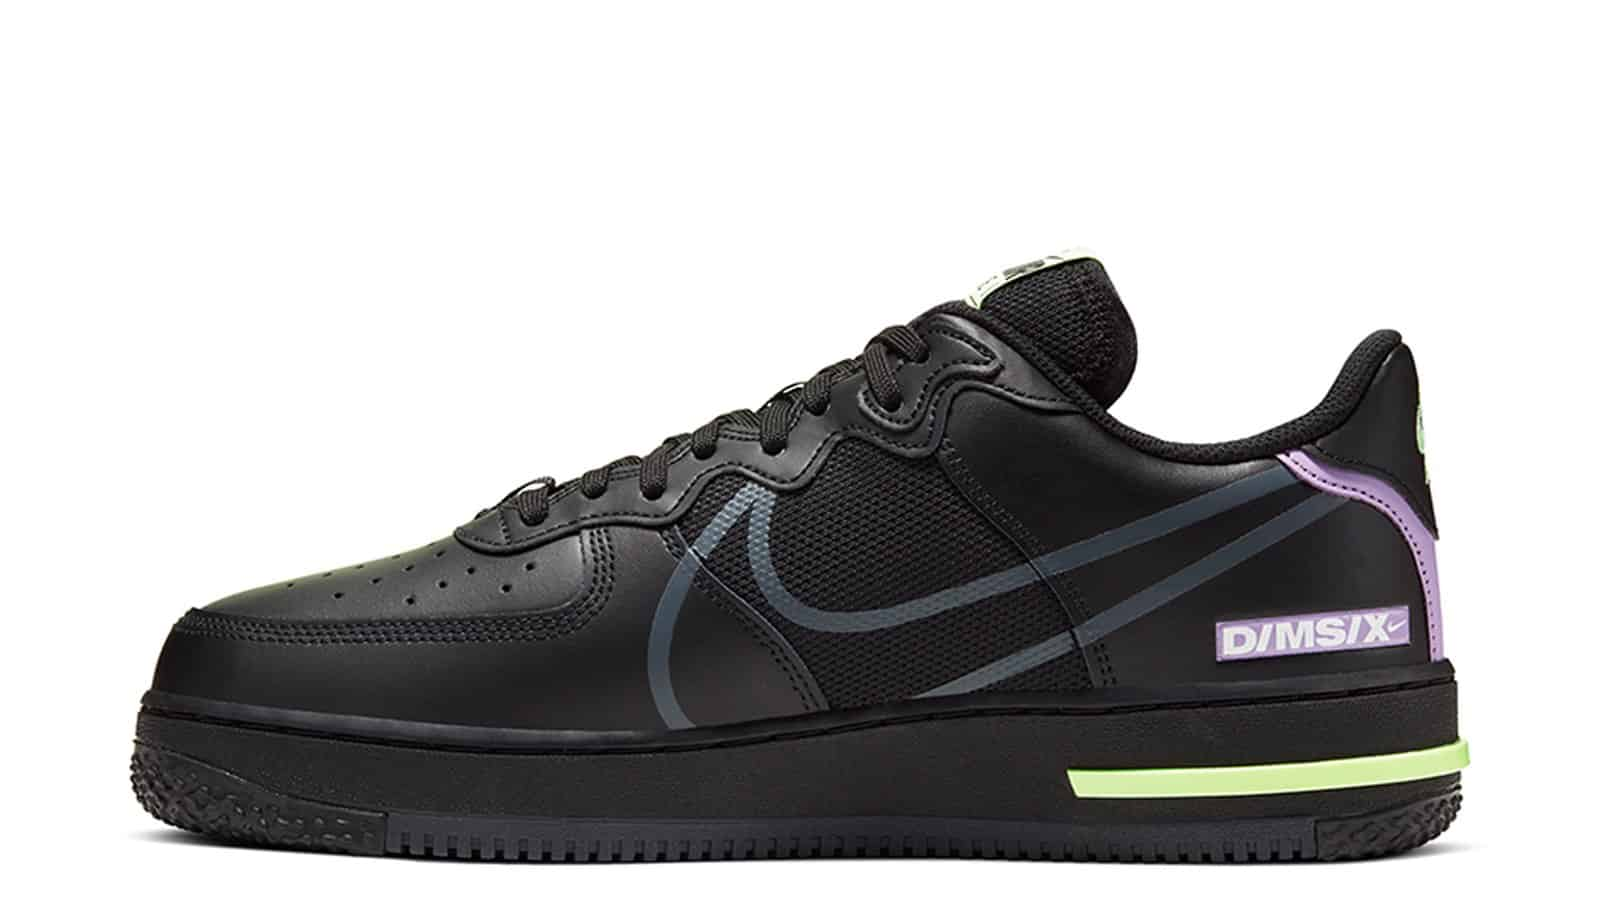 Nike Air Force 1 D MS X Black